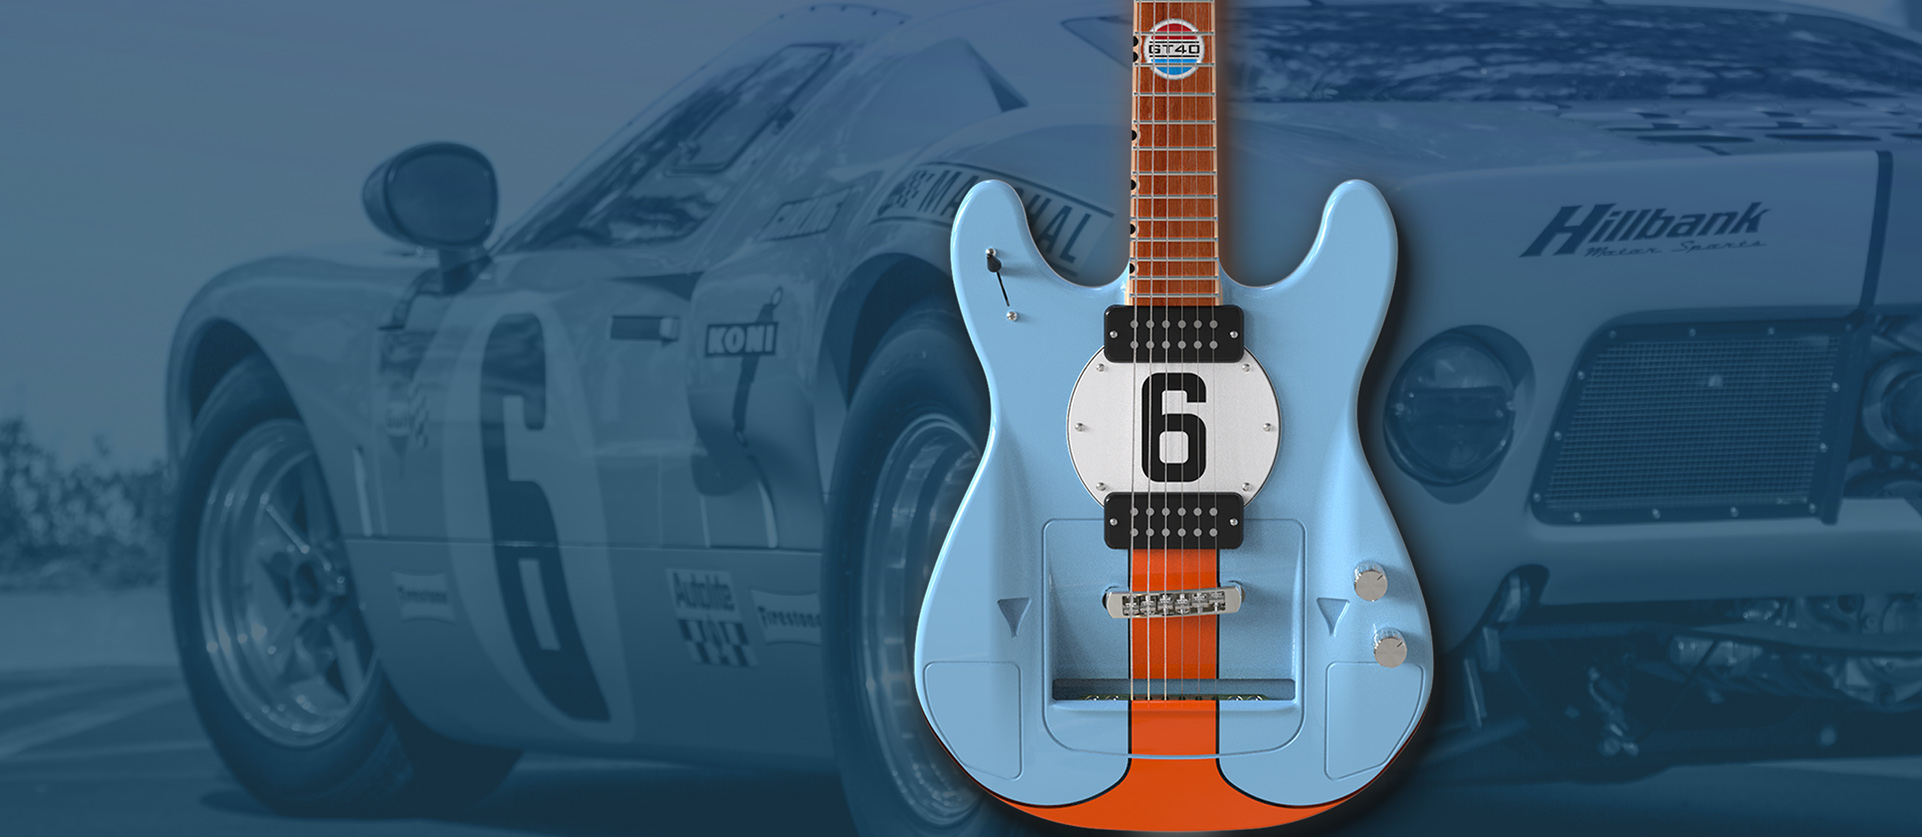 GT40 Victory Series Guitars for sale